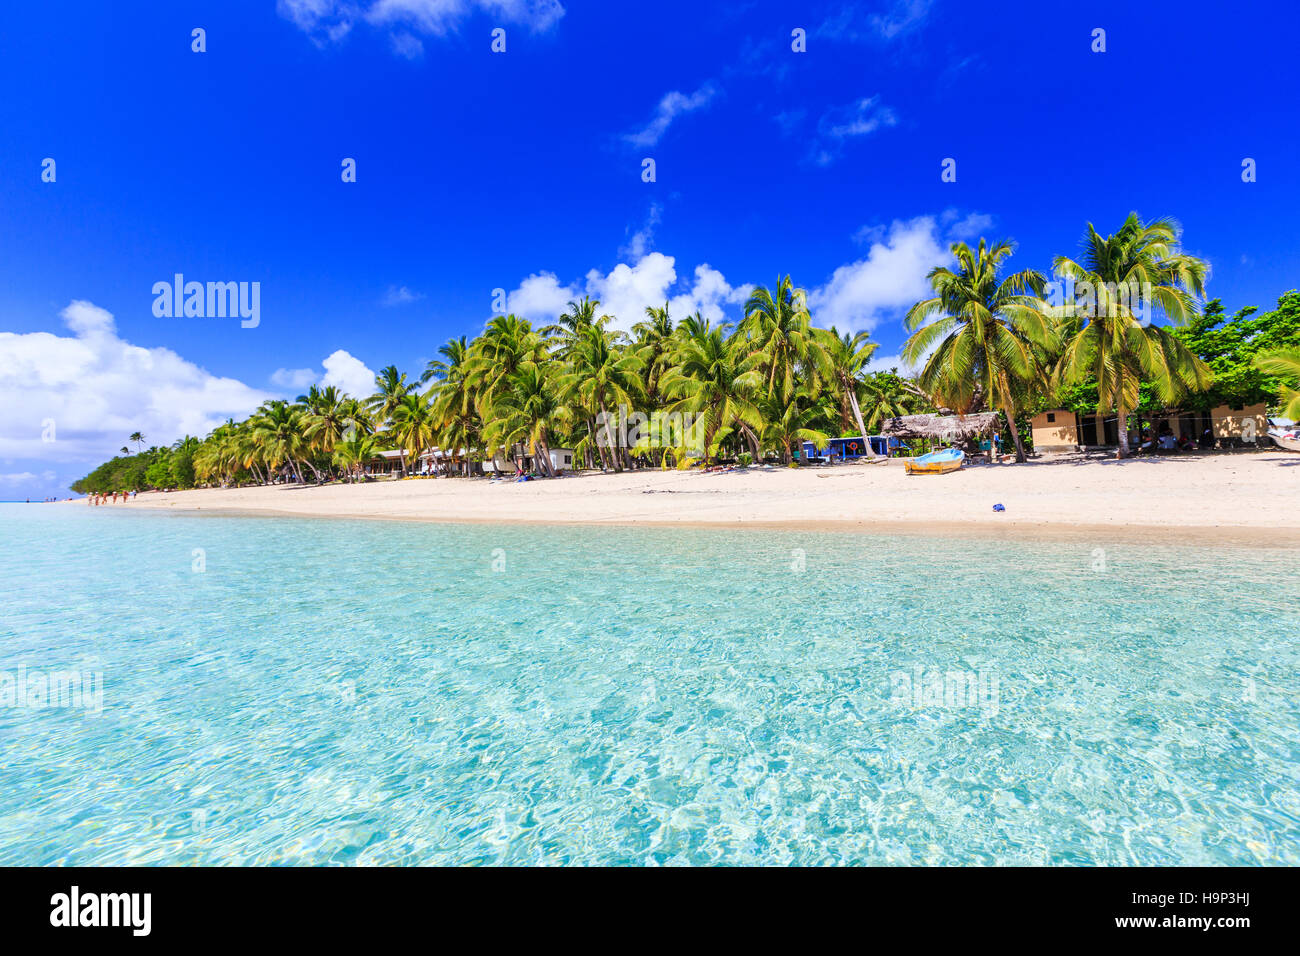 Beach on a tropical island with clear blue water. Dravuni Island, Fiji. - Stock Image